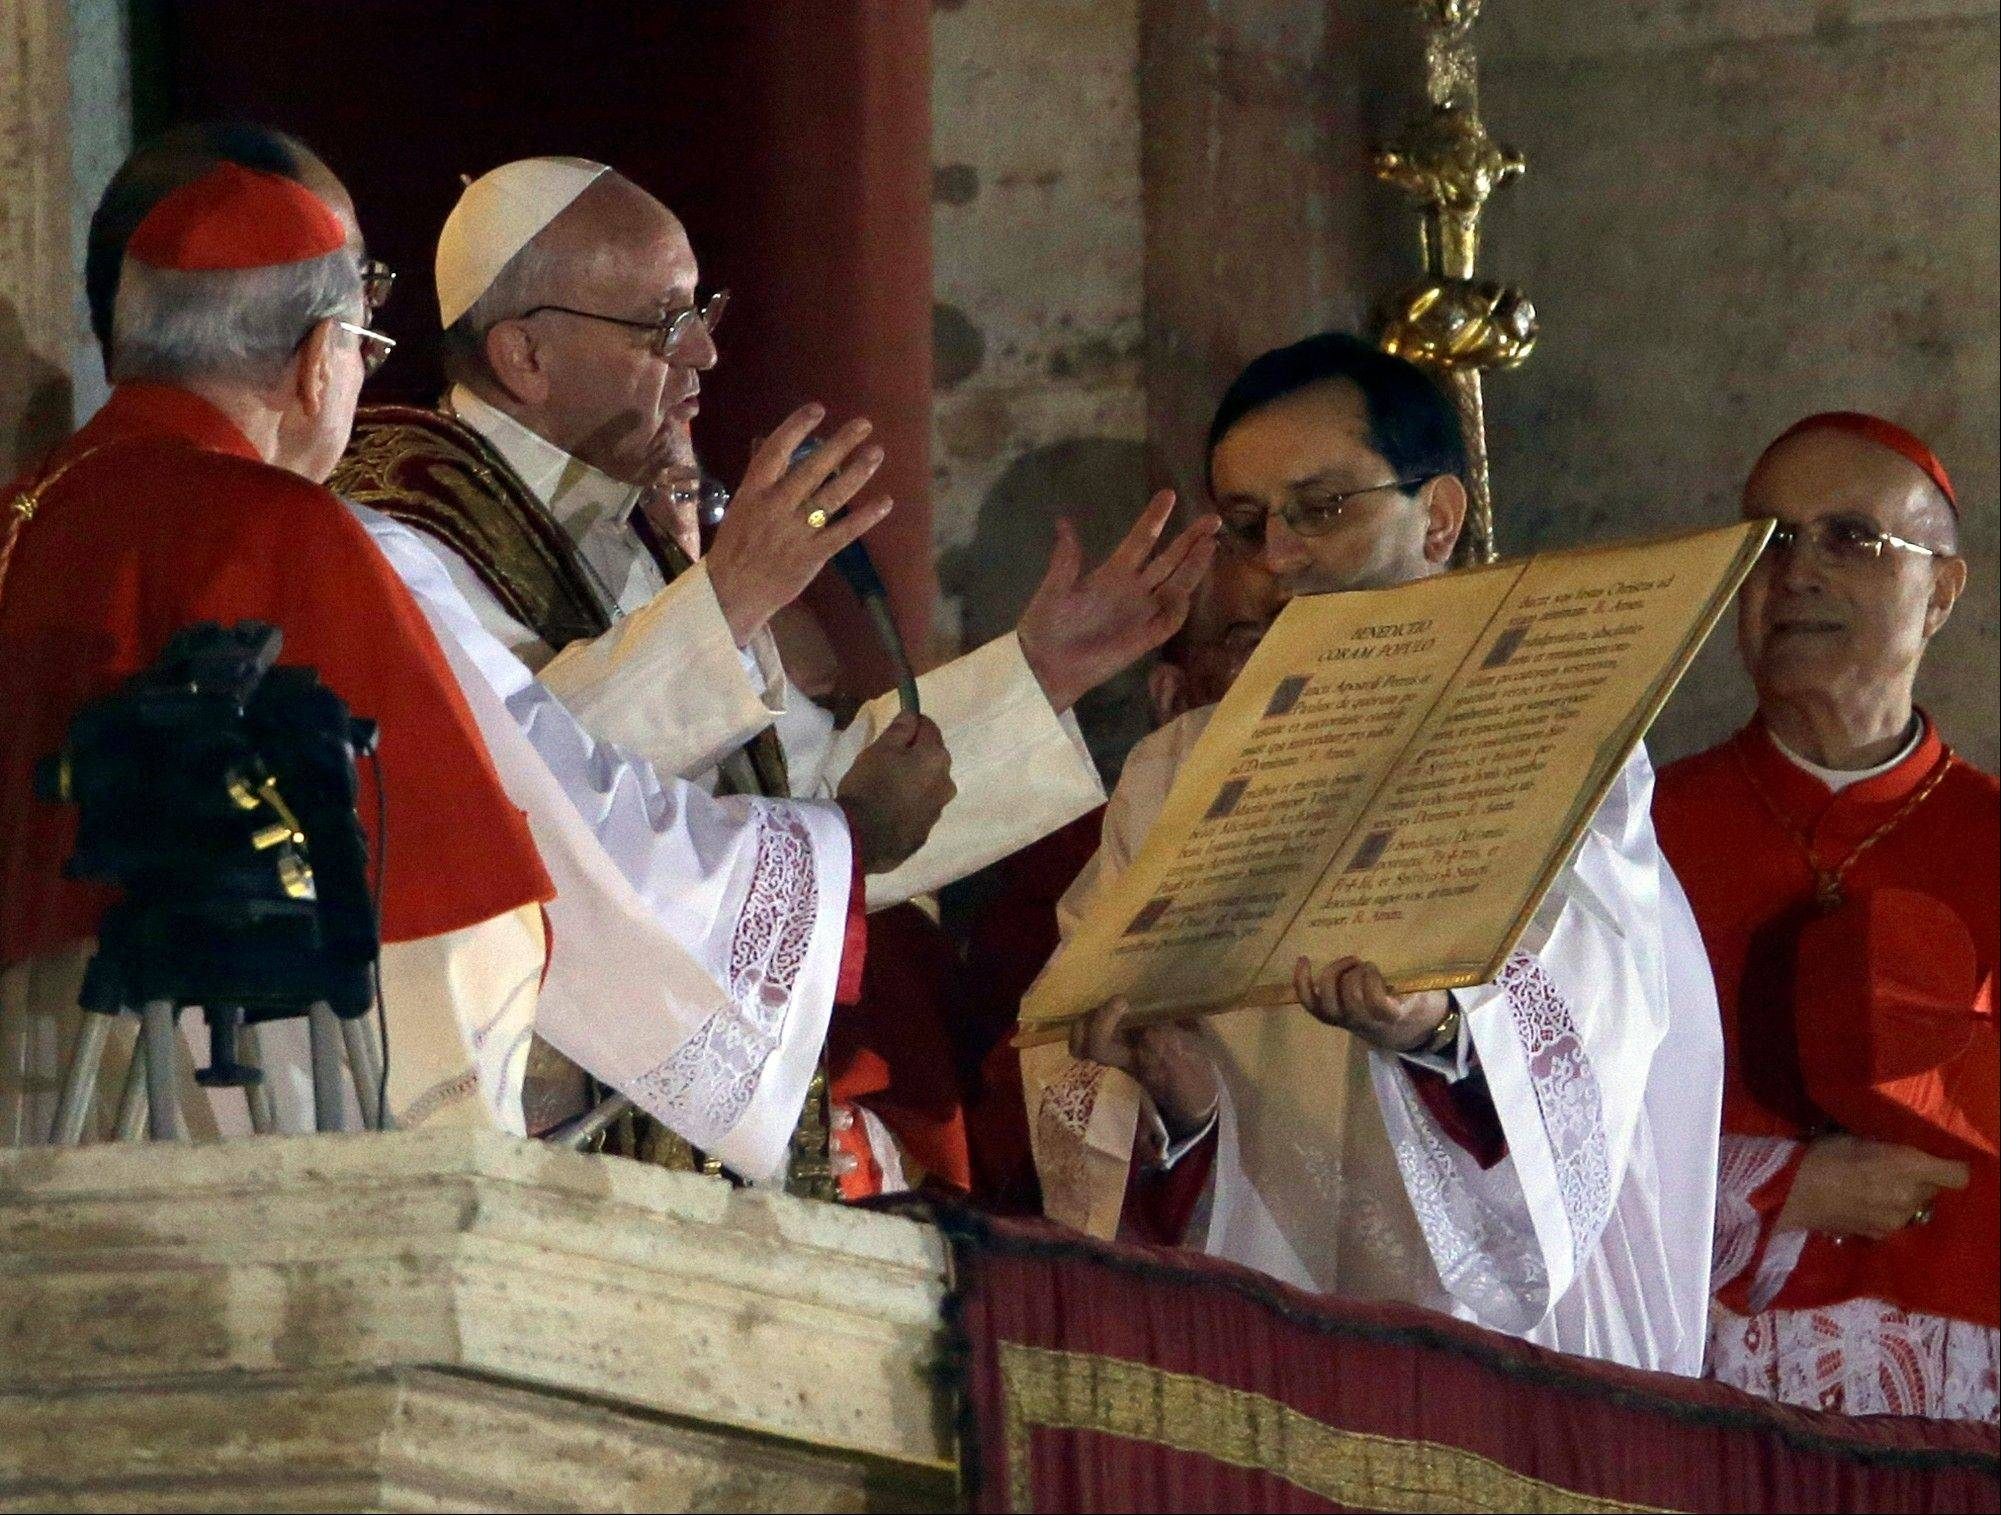 South Americans overjoyed at first Latin American pope